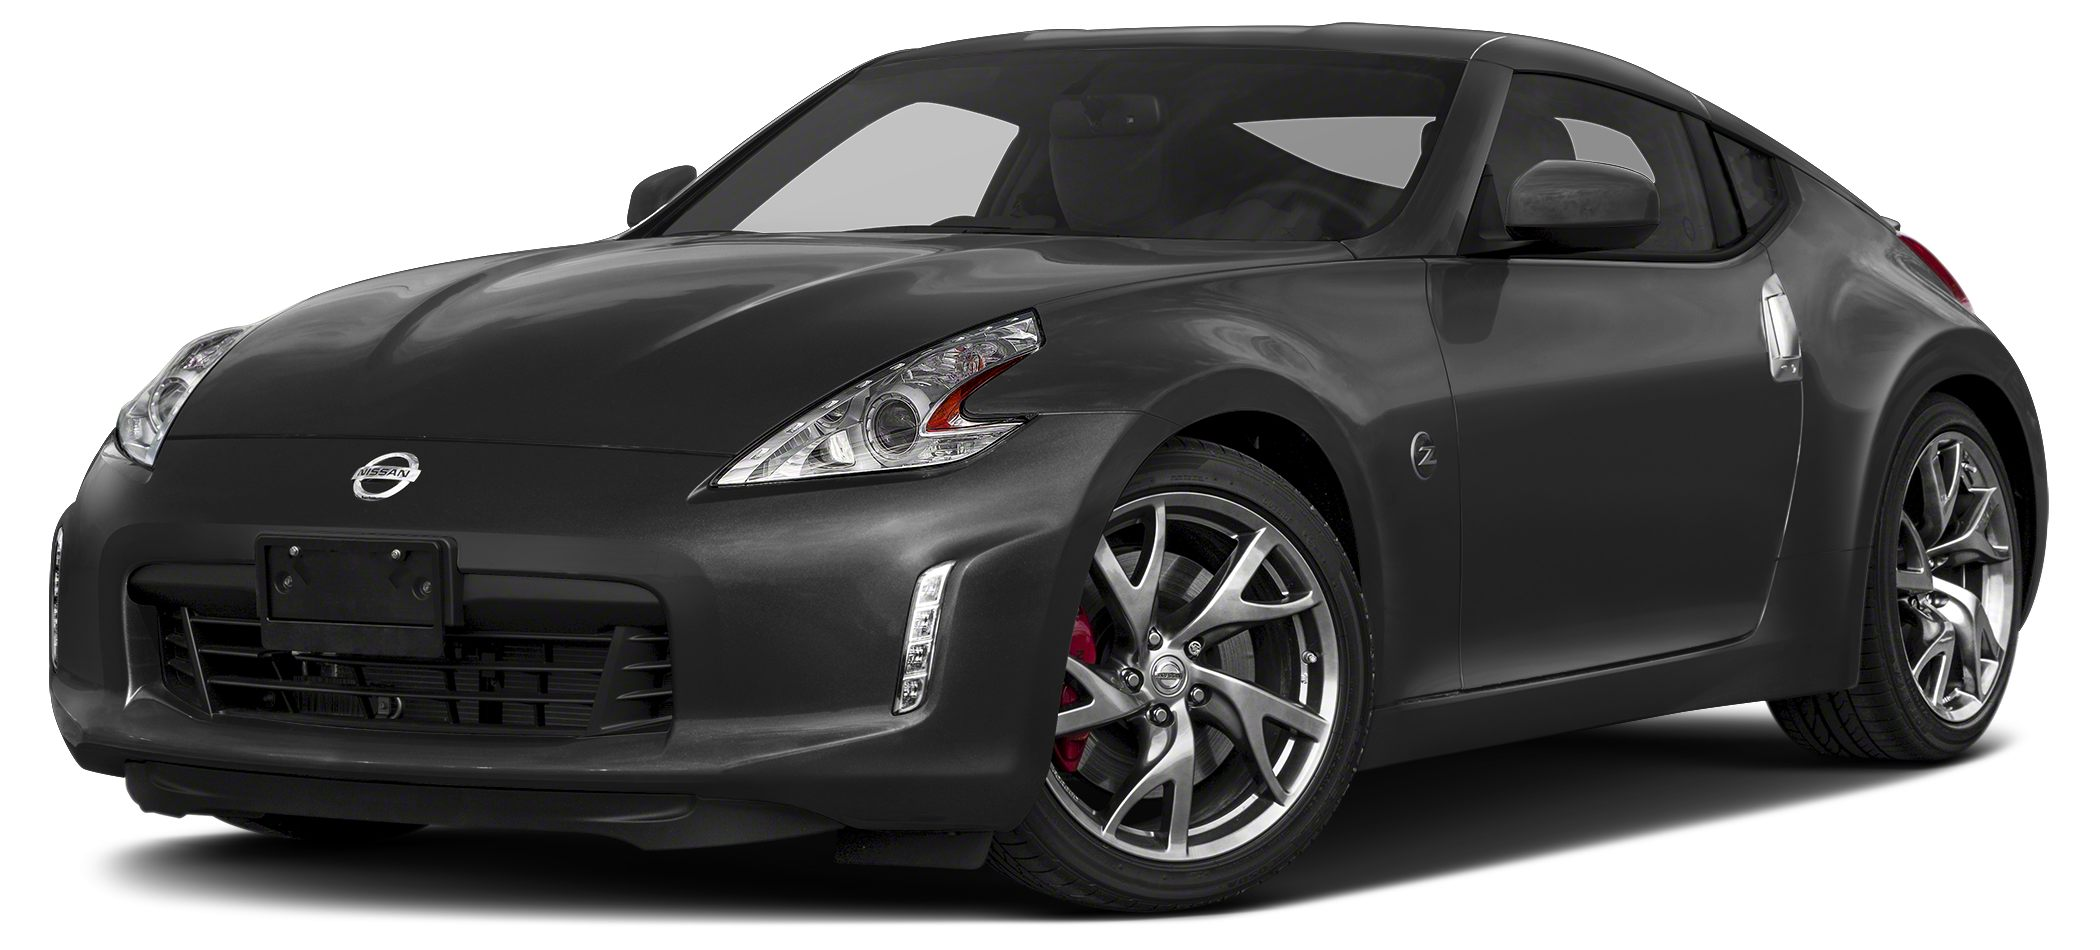 2015 Nissan 370Z Base This 2015 Nissan 370Z is easily one of the most fun vehicles on the road Su